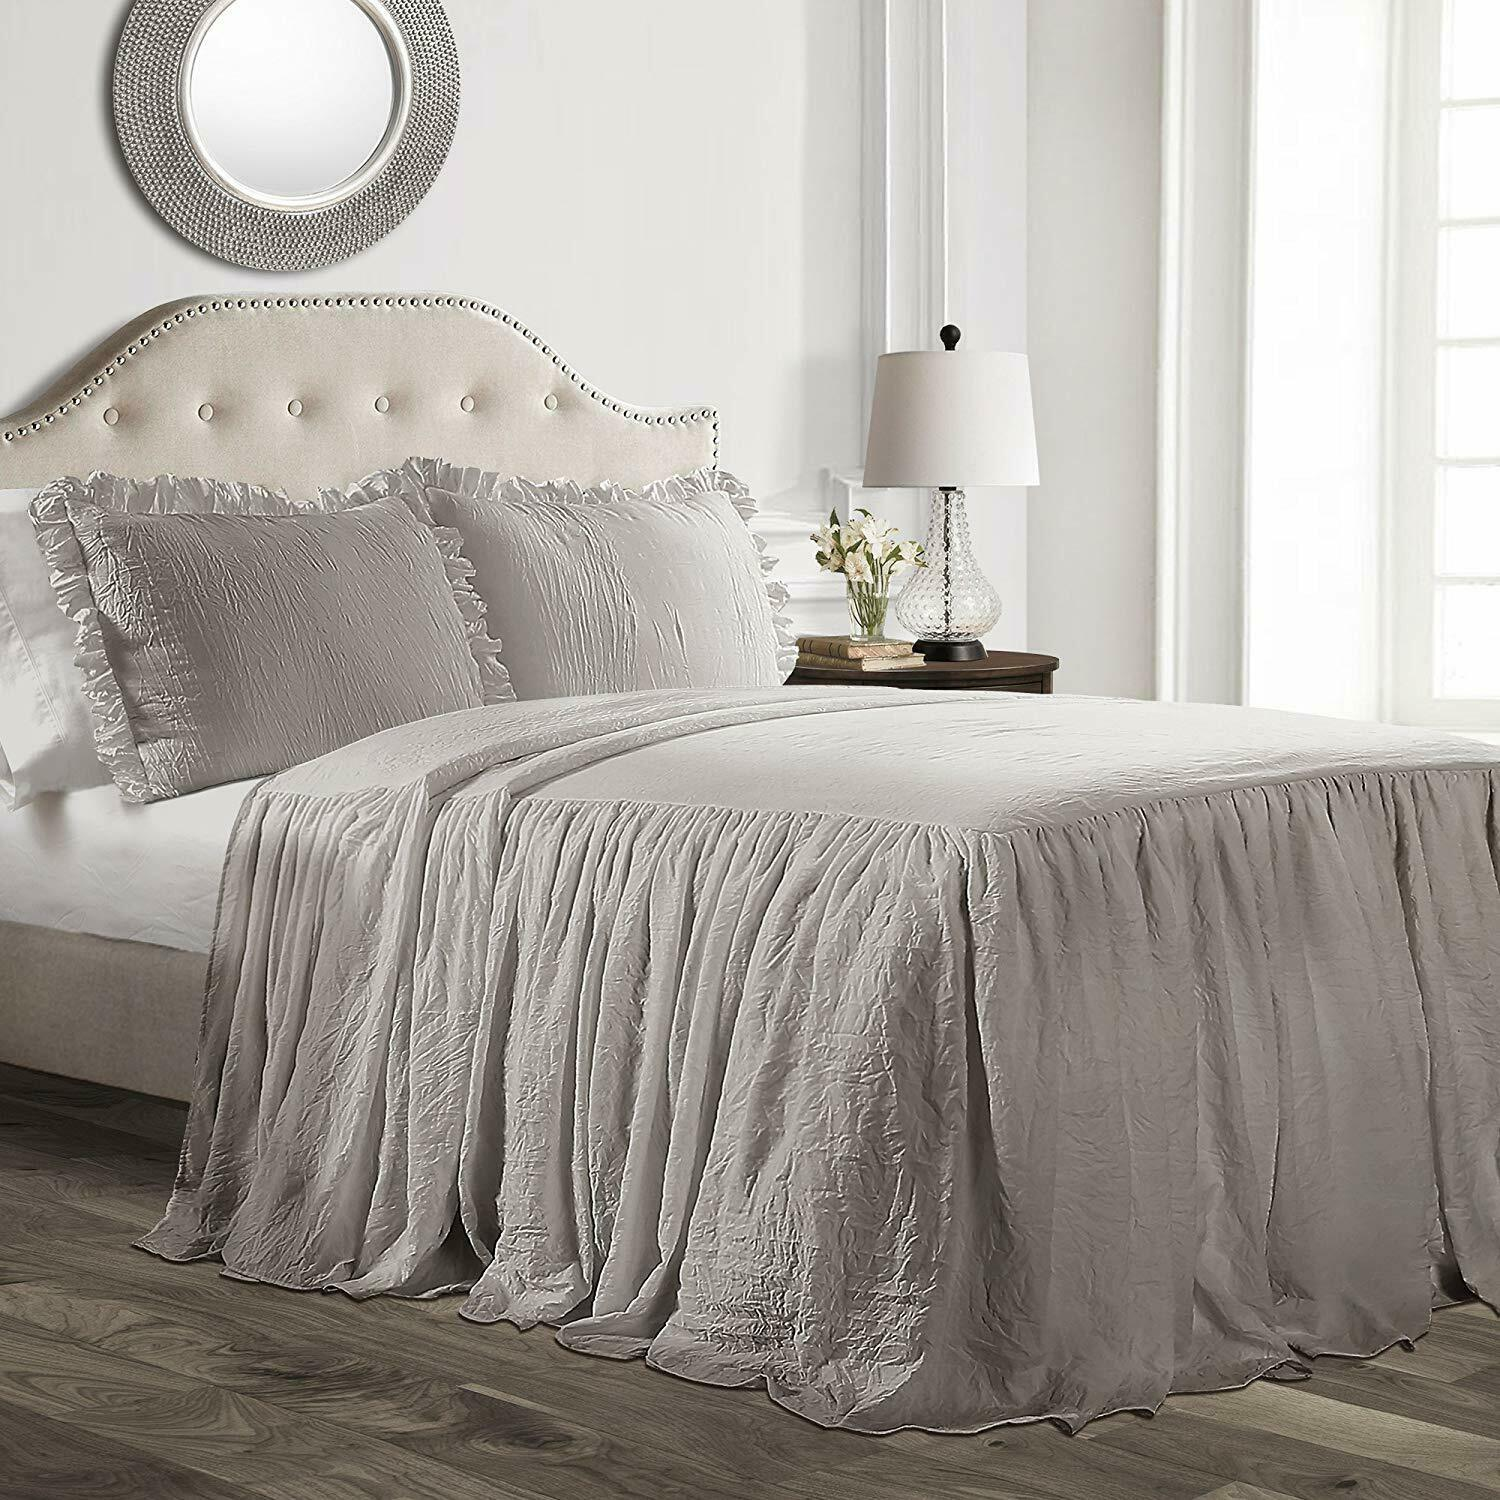 Gray Grey Twin Full Queen King Size Solid Ruffled Farmhouse Bedspread Set Shams Ebay